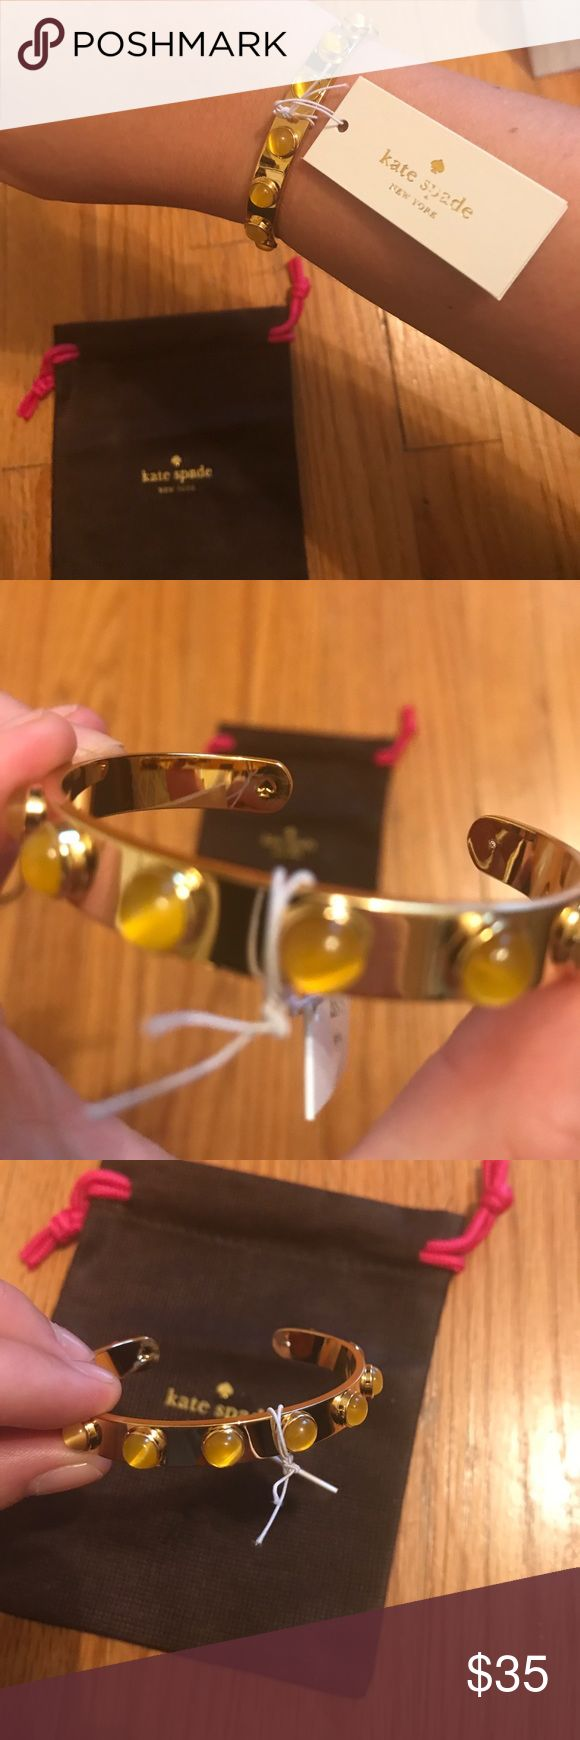 NEW//RARE Kate Spade yellow Tag Along cuff Brand new item.  Gold-plated thin cuff with yellow baubles.  RARE* the yellow color is sold out at Kate Spade and most retailers ♠️. Website: Pop in perfect color to complement your ensemble with the Kate Spade New York® Tag Along Cuff Bracelet. Gold-plated metal. Colorful yellow resin cabochons. Slip-on style.  Guaranteed AUTHENTIC.  Measurements: Width: 1⁄3 in Diameter/Length: 2 2⁄9 in Weight: 0.8 oz **purchase includes drawstring jewelry bag kate…